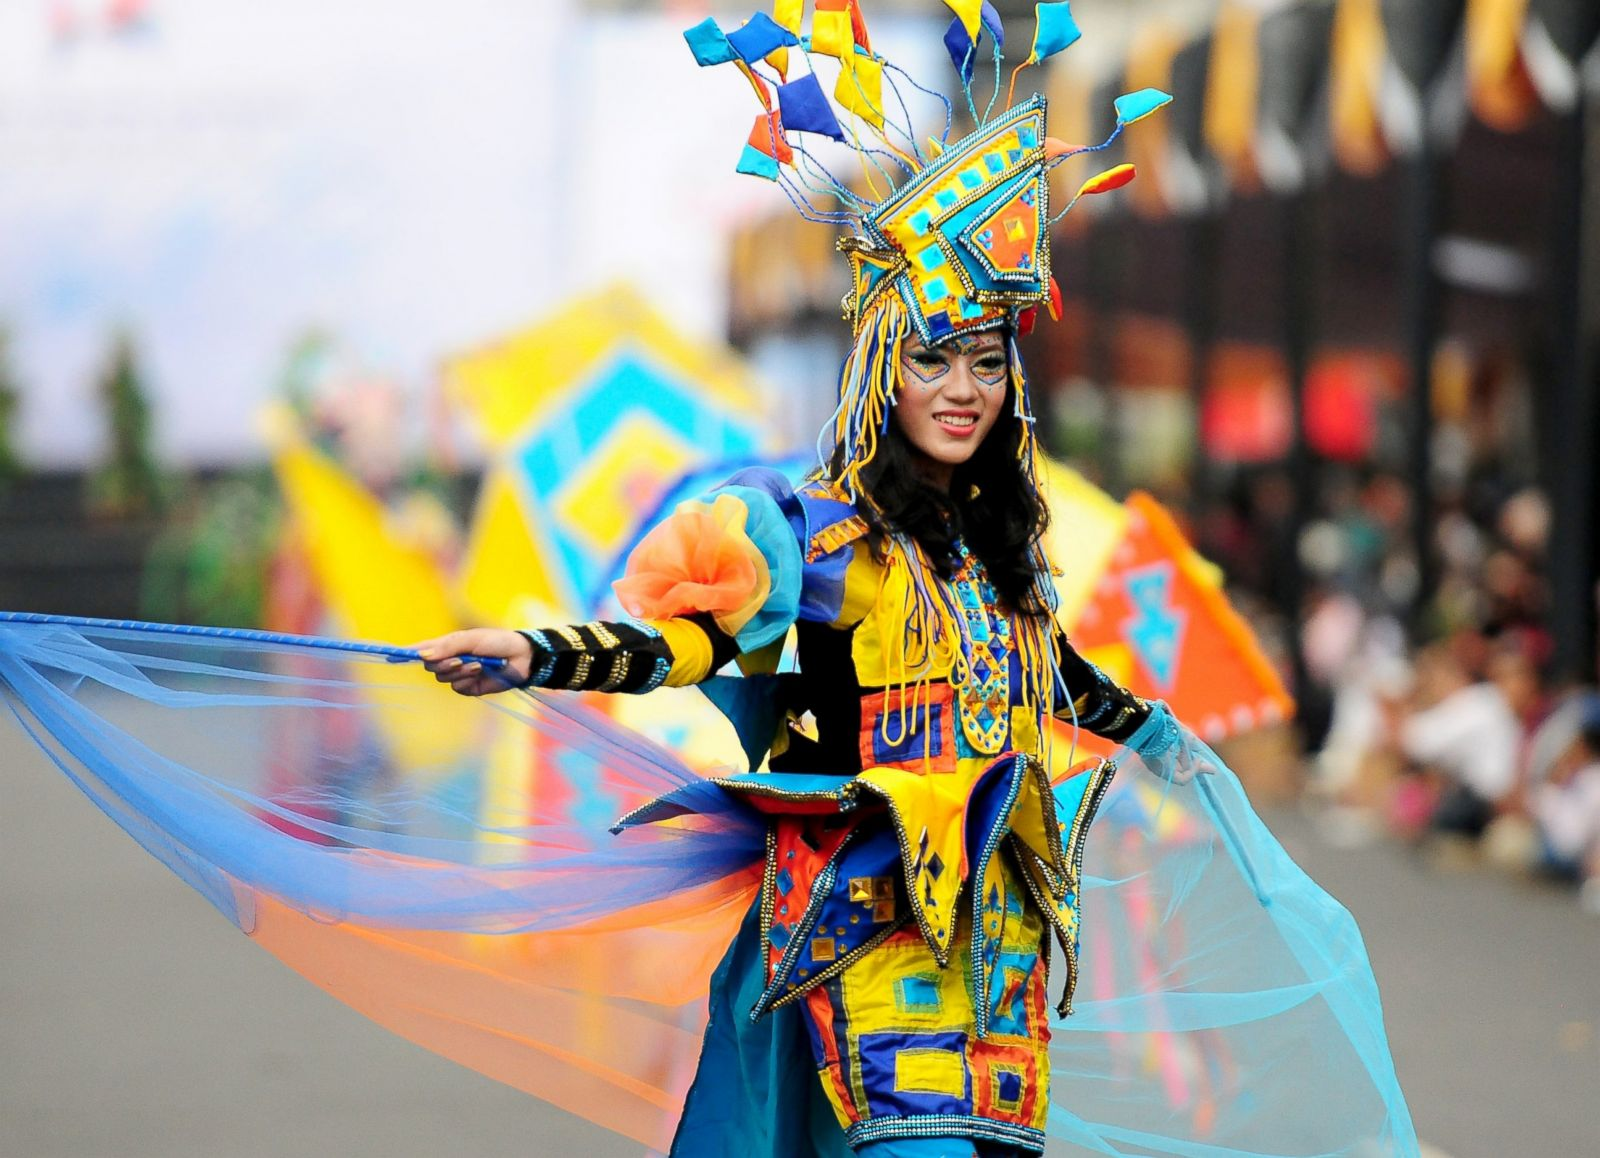 Outrageous Costumes Bring Life To Annual Fashion Carnival Photos